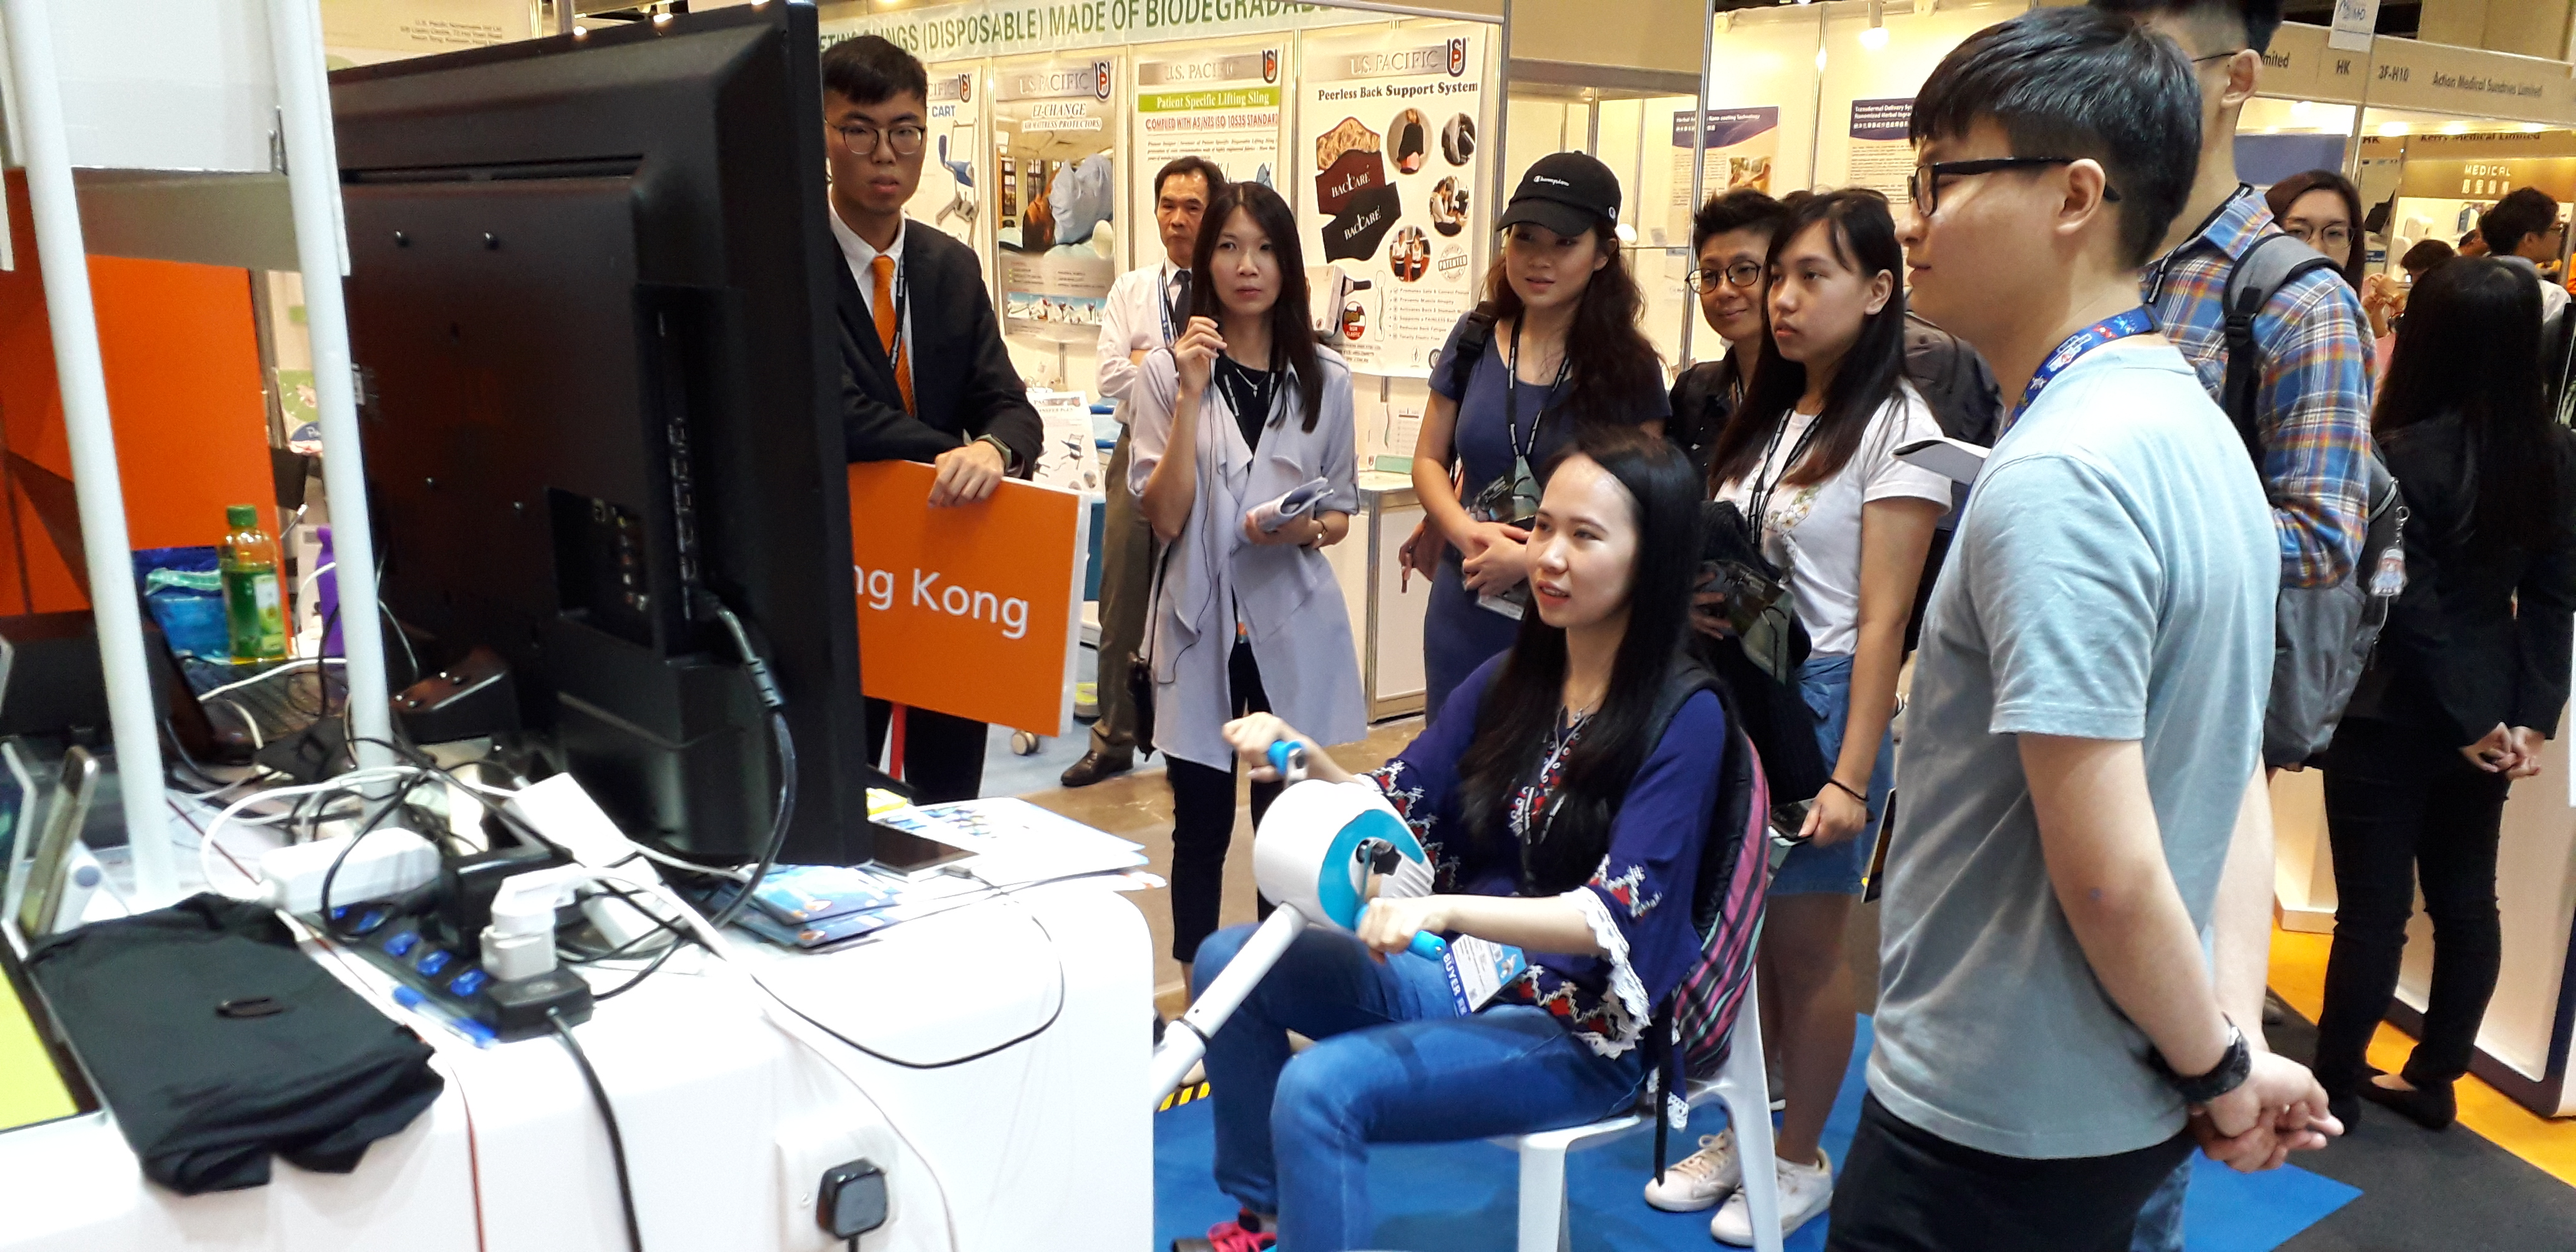 Visiting Medical & Health Exhibition - Photo - 1